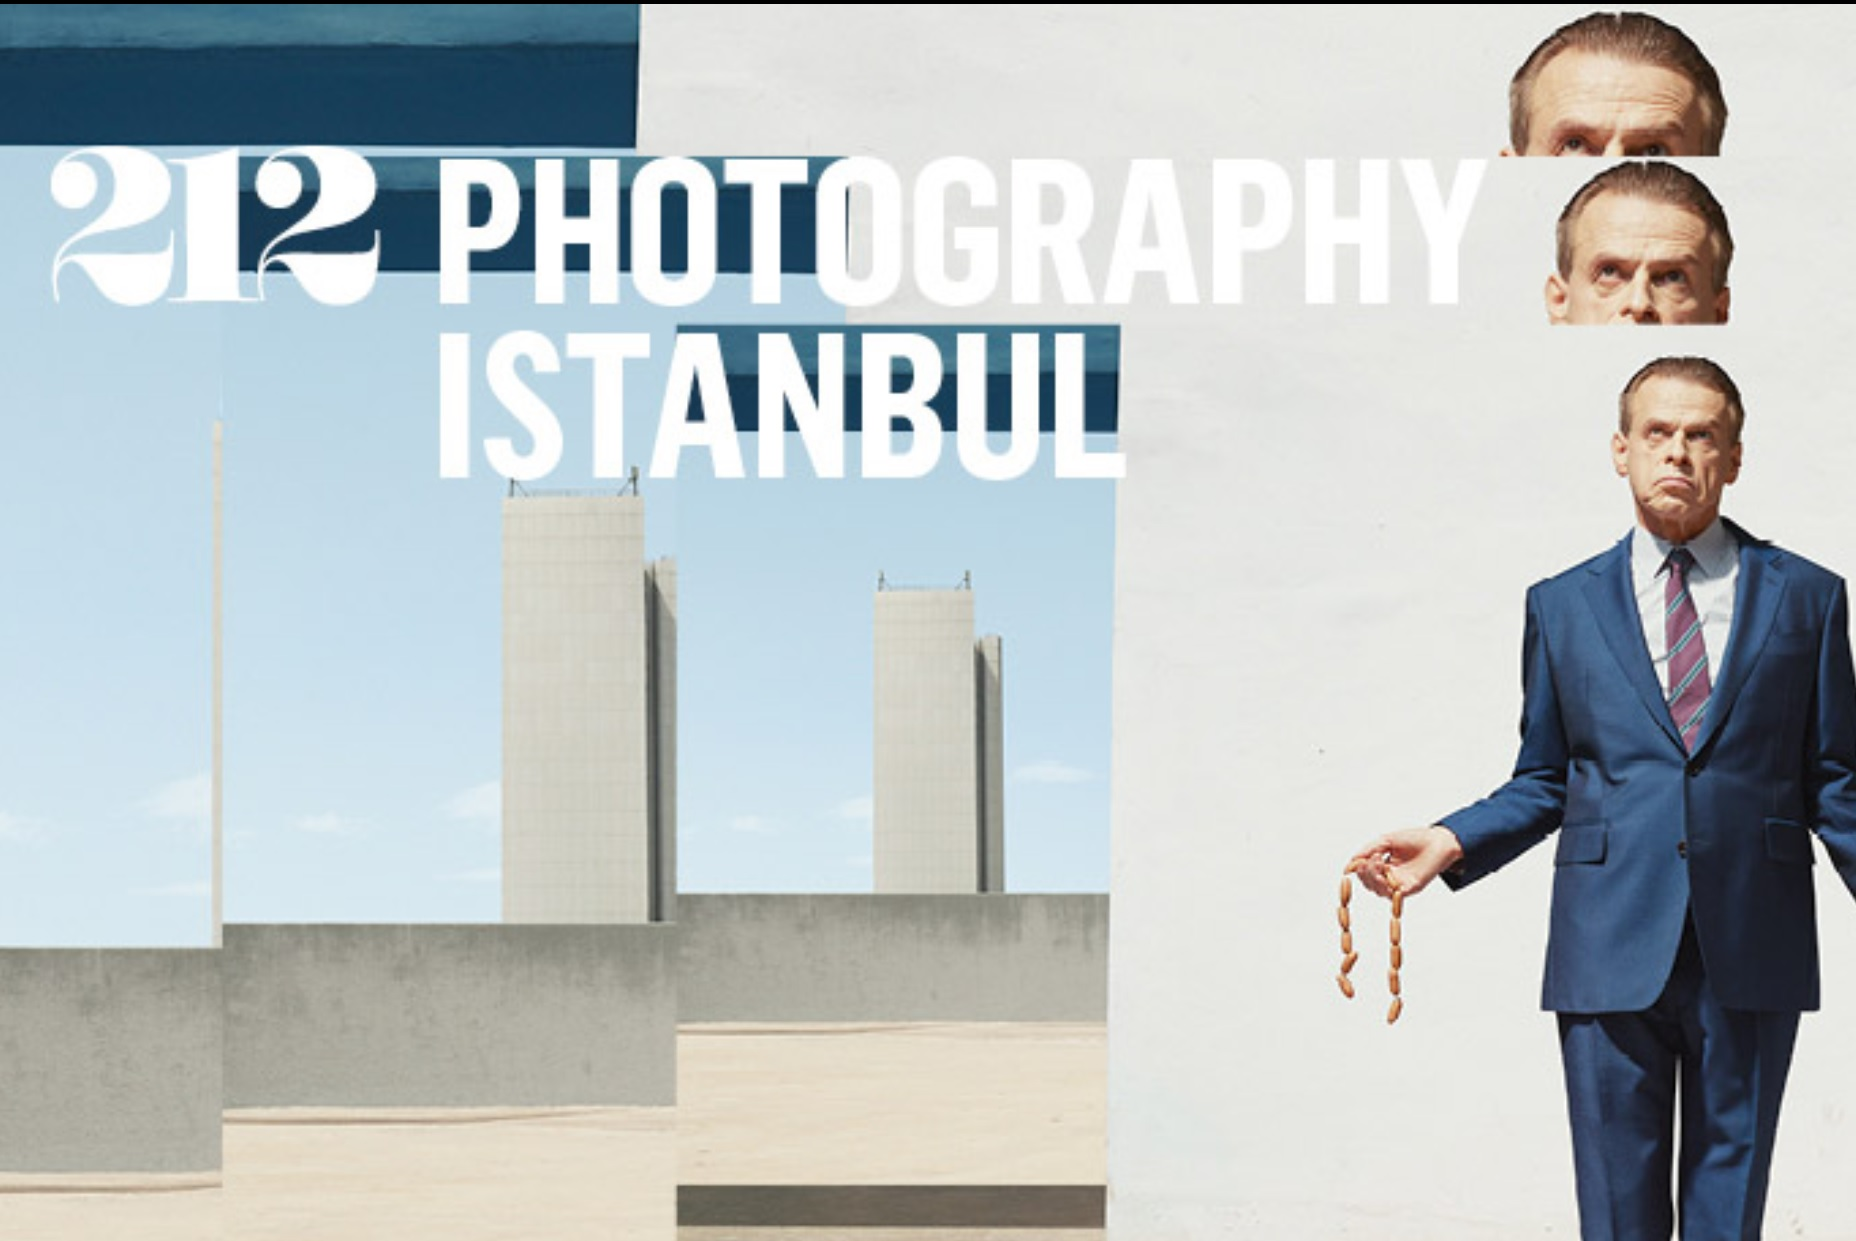 212 Photography Competition - logo